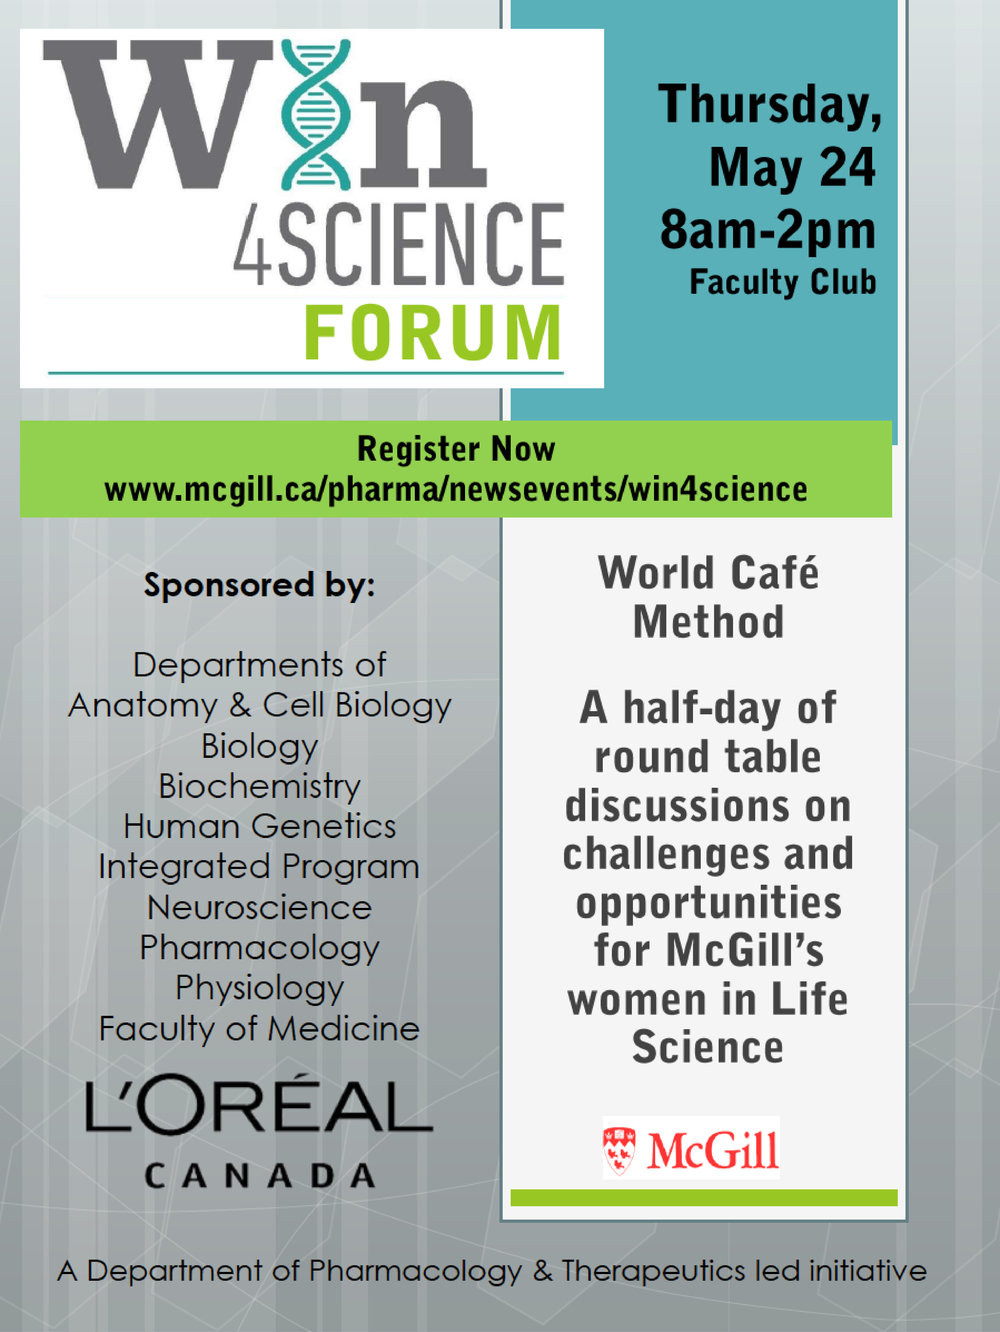 Report of the Win4Science Forum - In May 2018, McGill researchers discussed barriers for women in Life Sciences at McGill, which we summarized in a report.Click here to download the report.